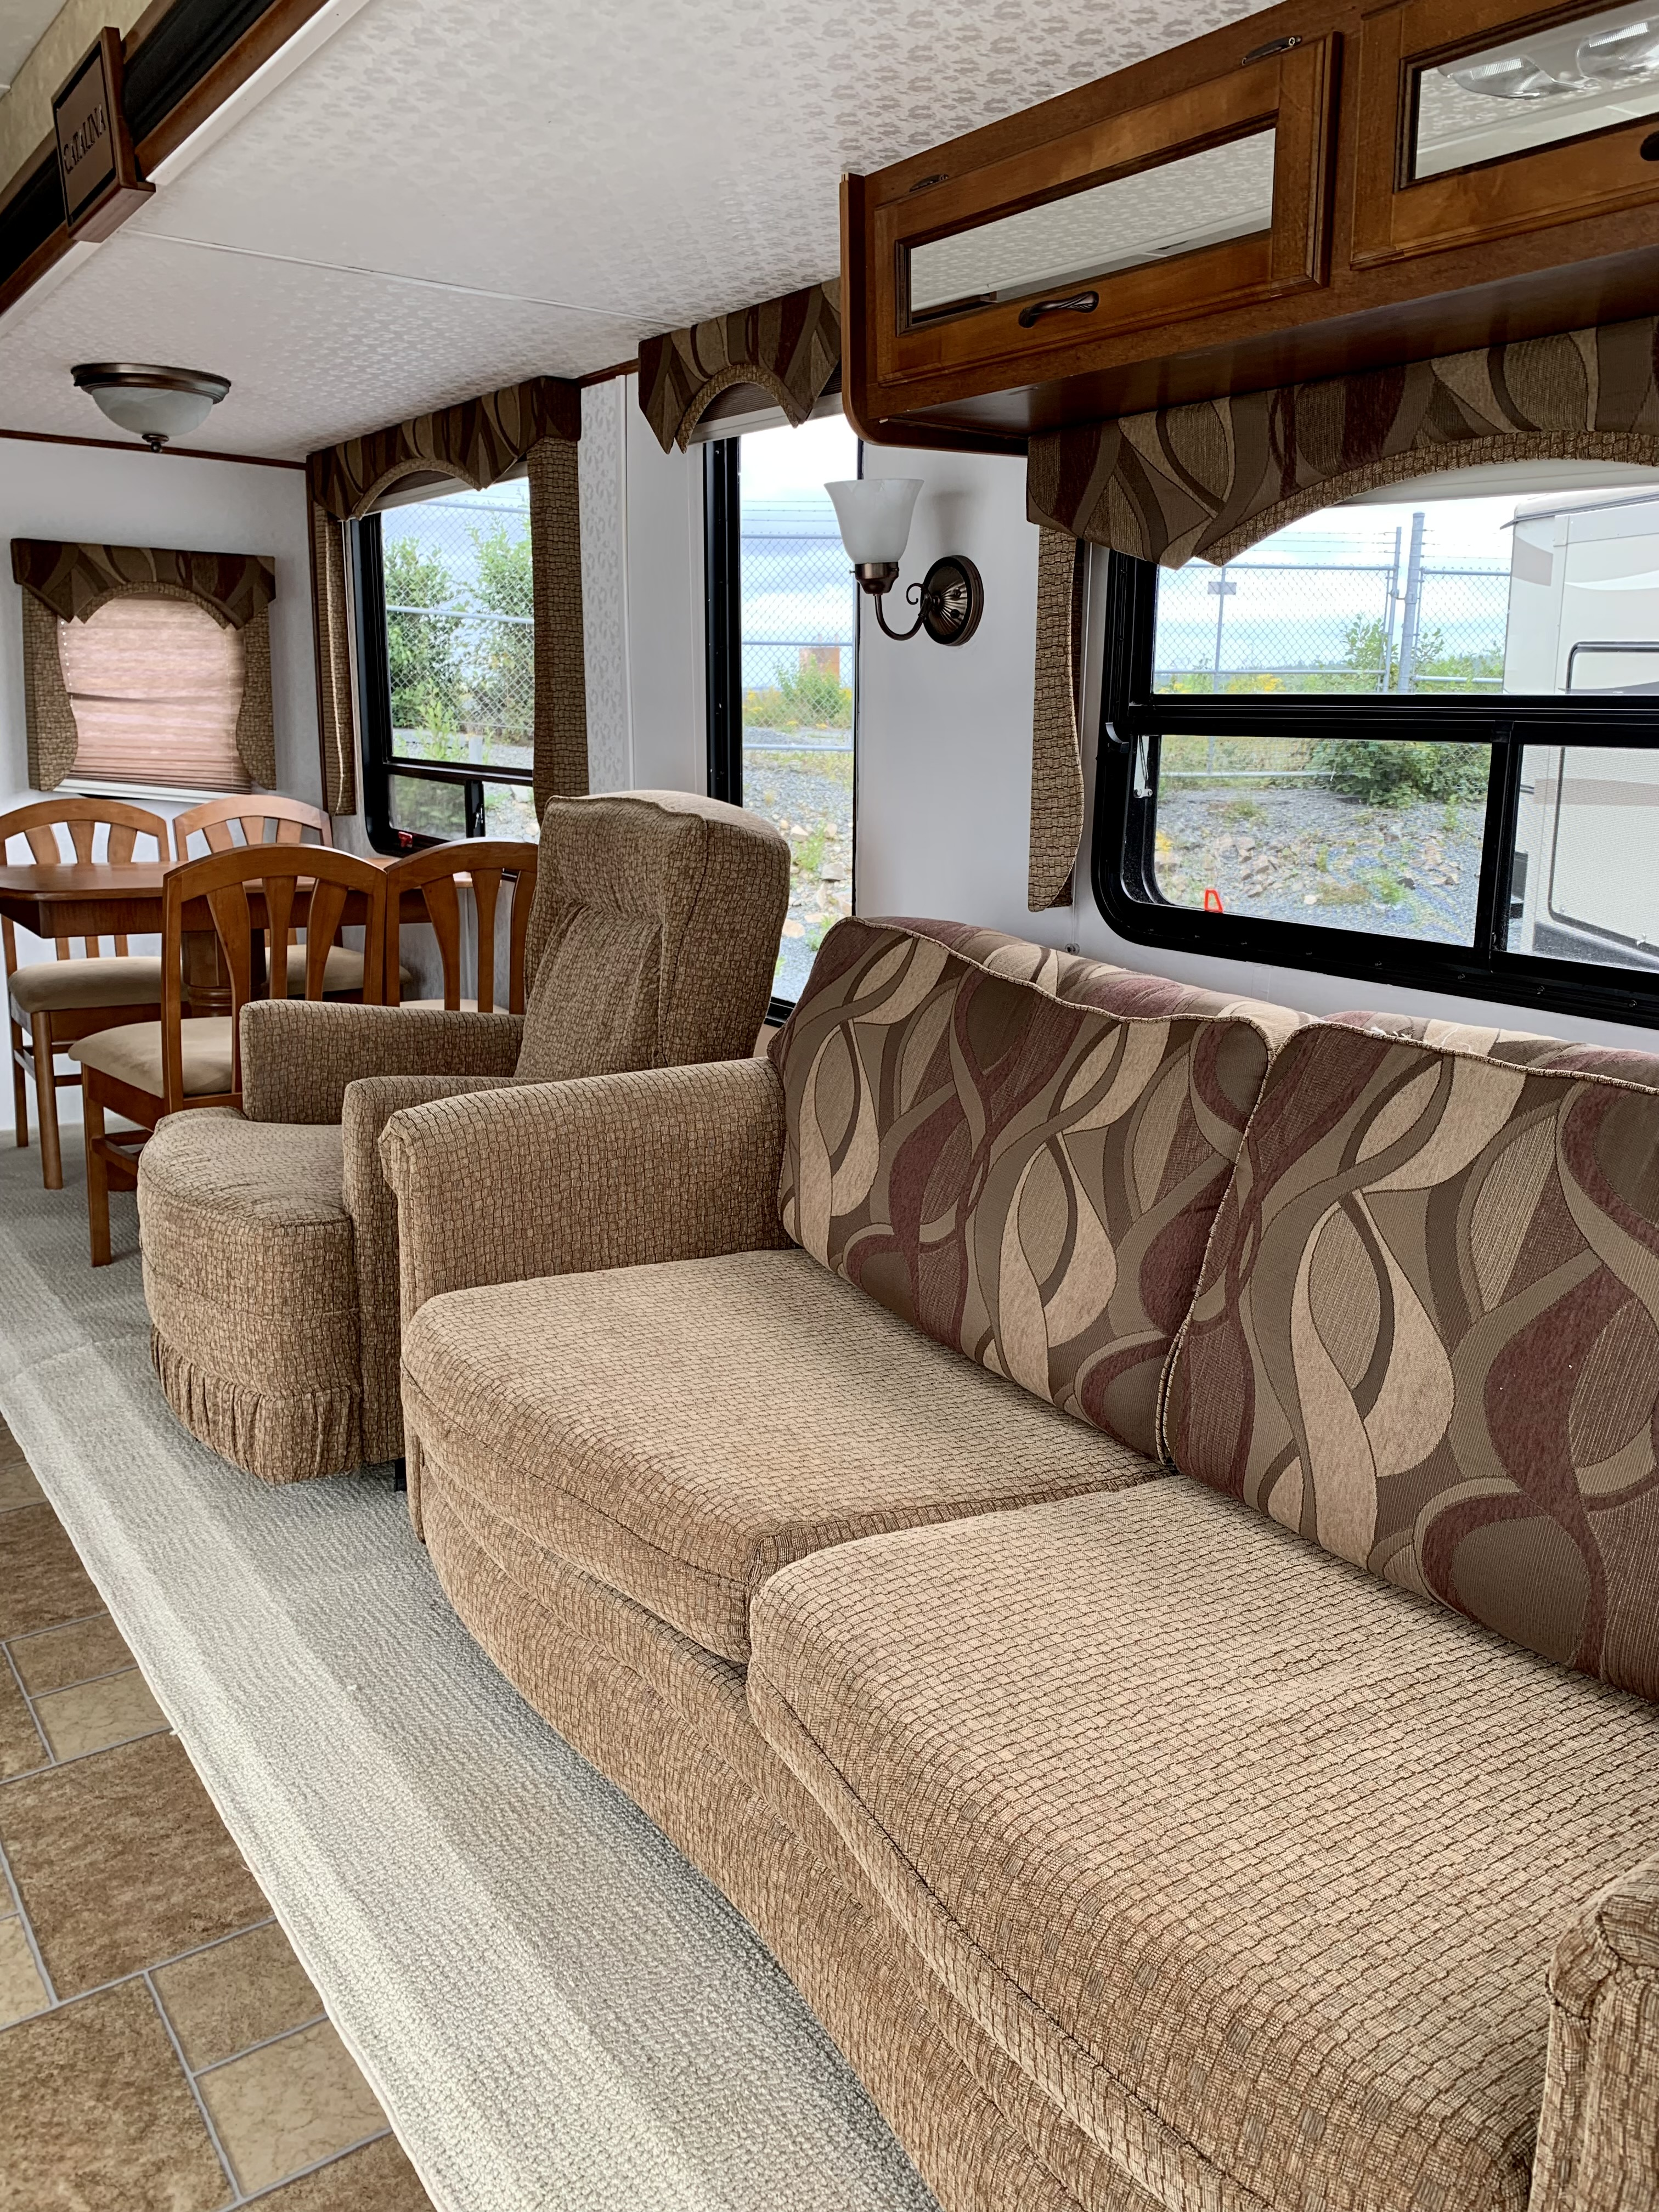 2012 COACHMEN CATALINA 39FLFB USED PARK MODEL FOR SALE HALIFAX NS